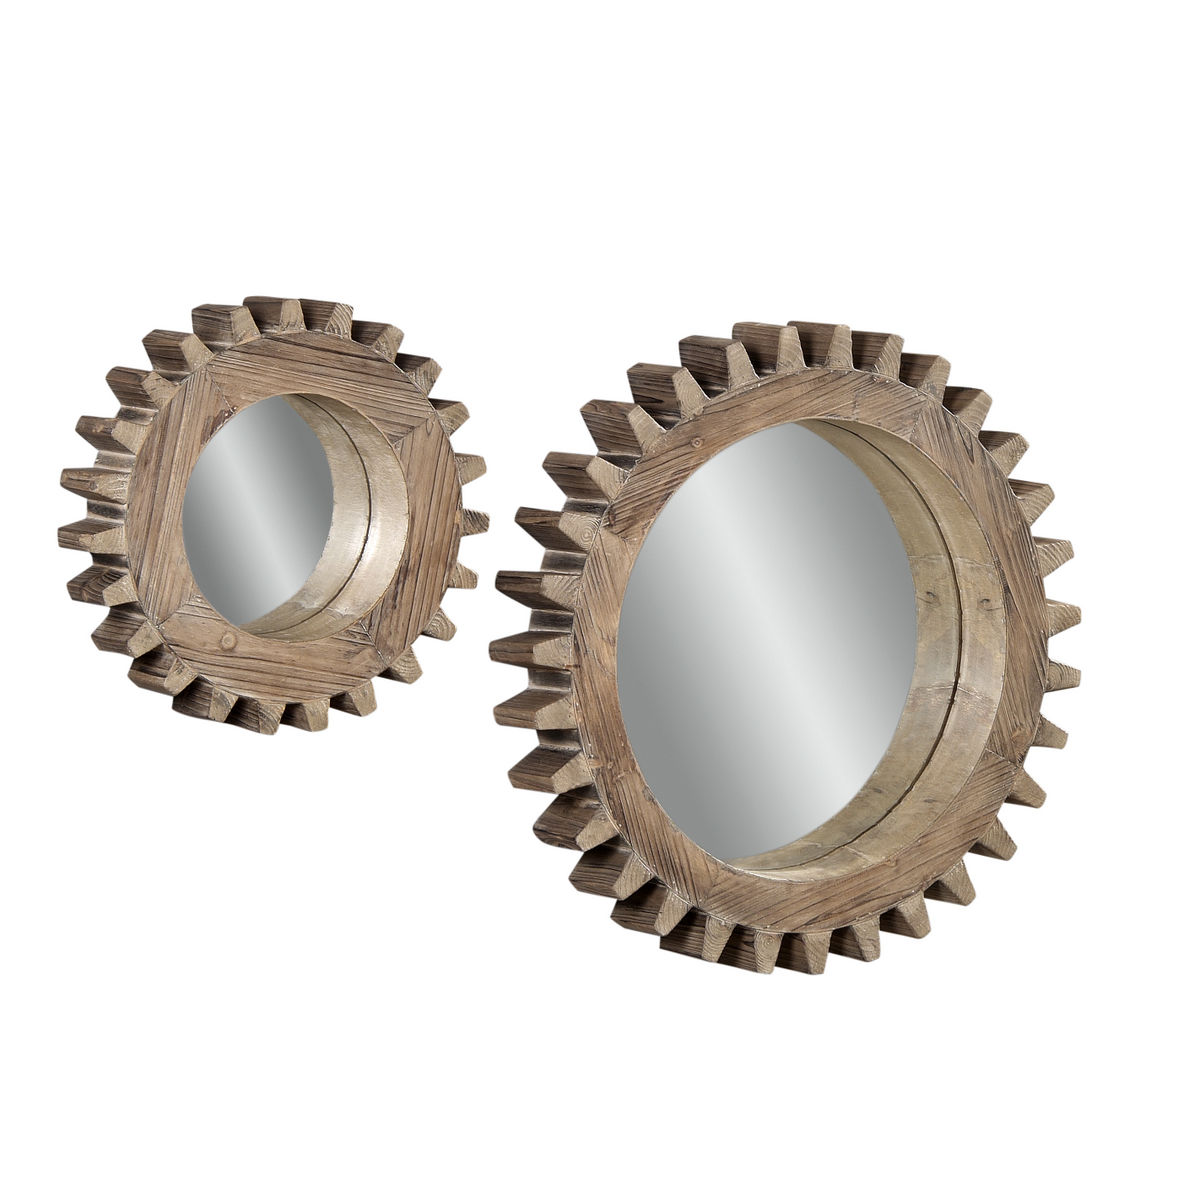 Wall Mirror Set sprockets wall mirror - set of 2 (dark weathered finish